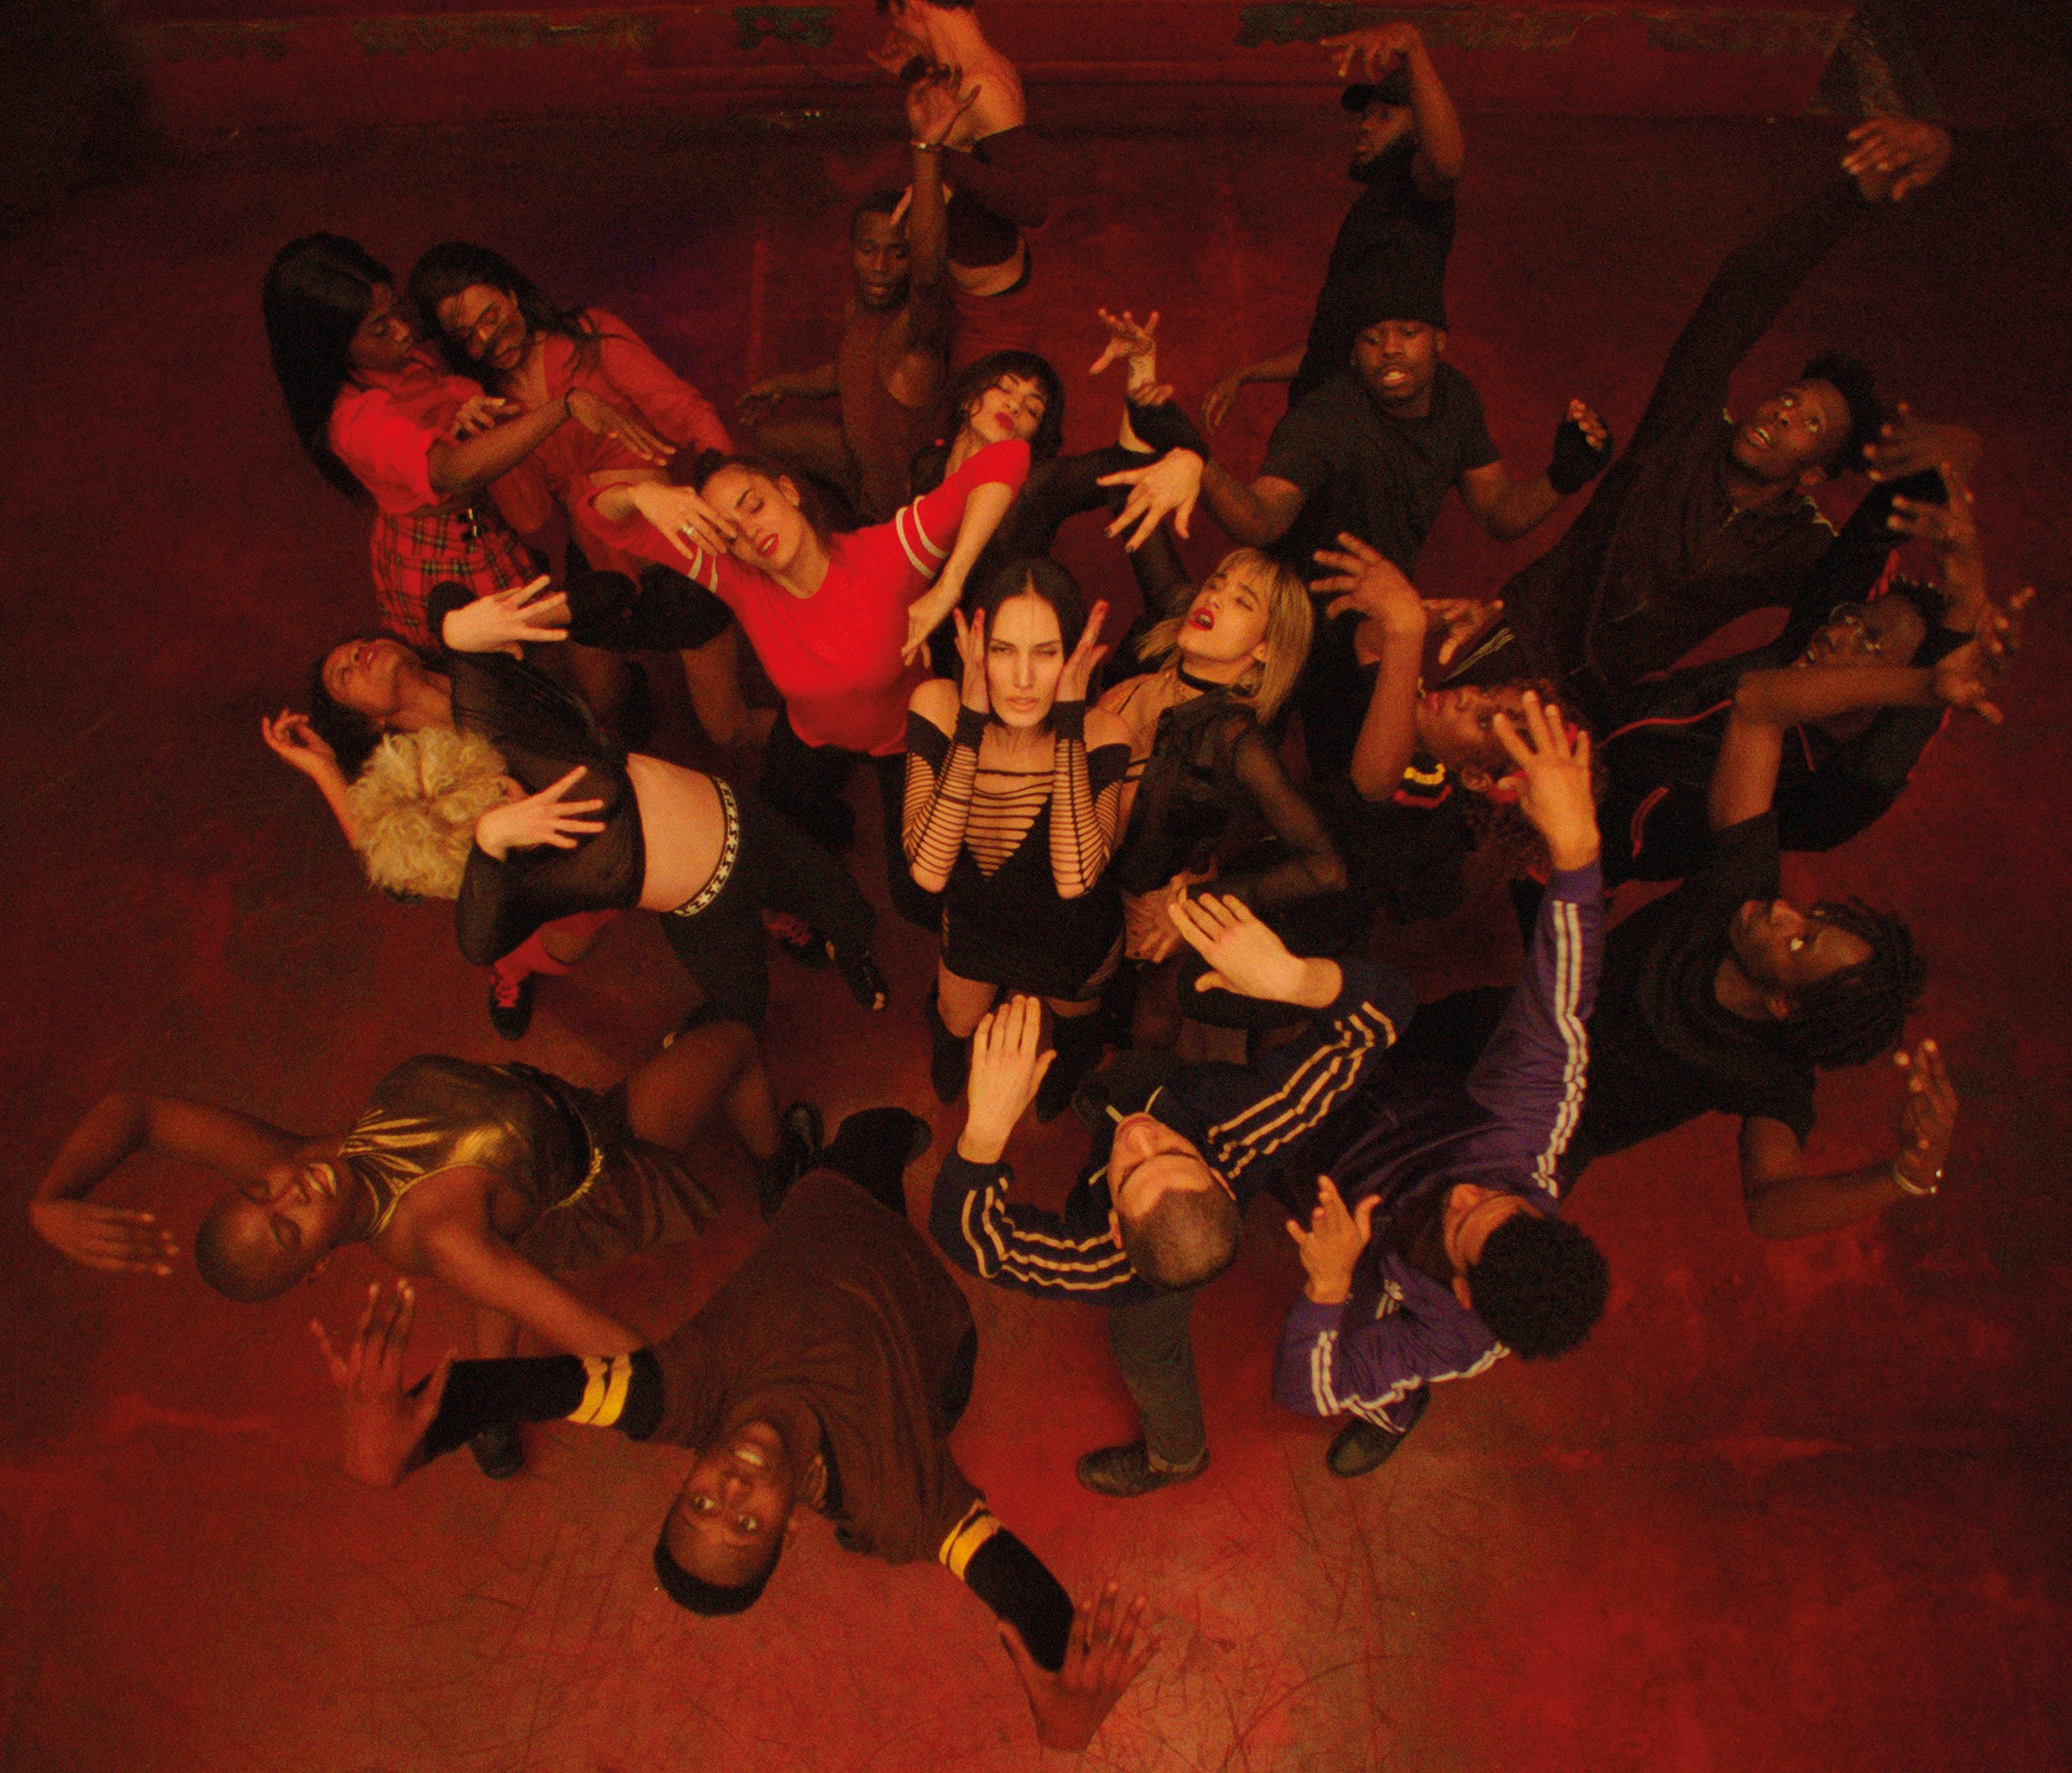 """Sofia Boutella, Romain Guillermic, Souheila Yacoub, Kiddy Smile and their dance mates take to the floor before the mayhem in """"Climax."""""""